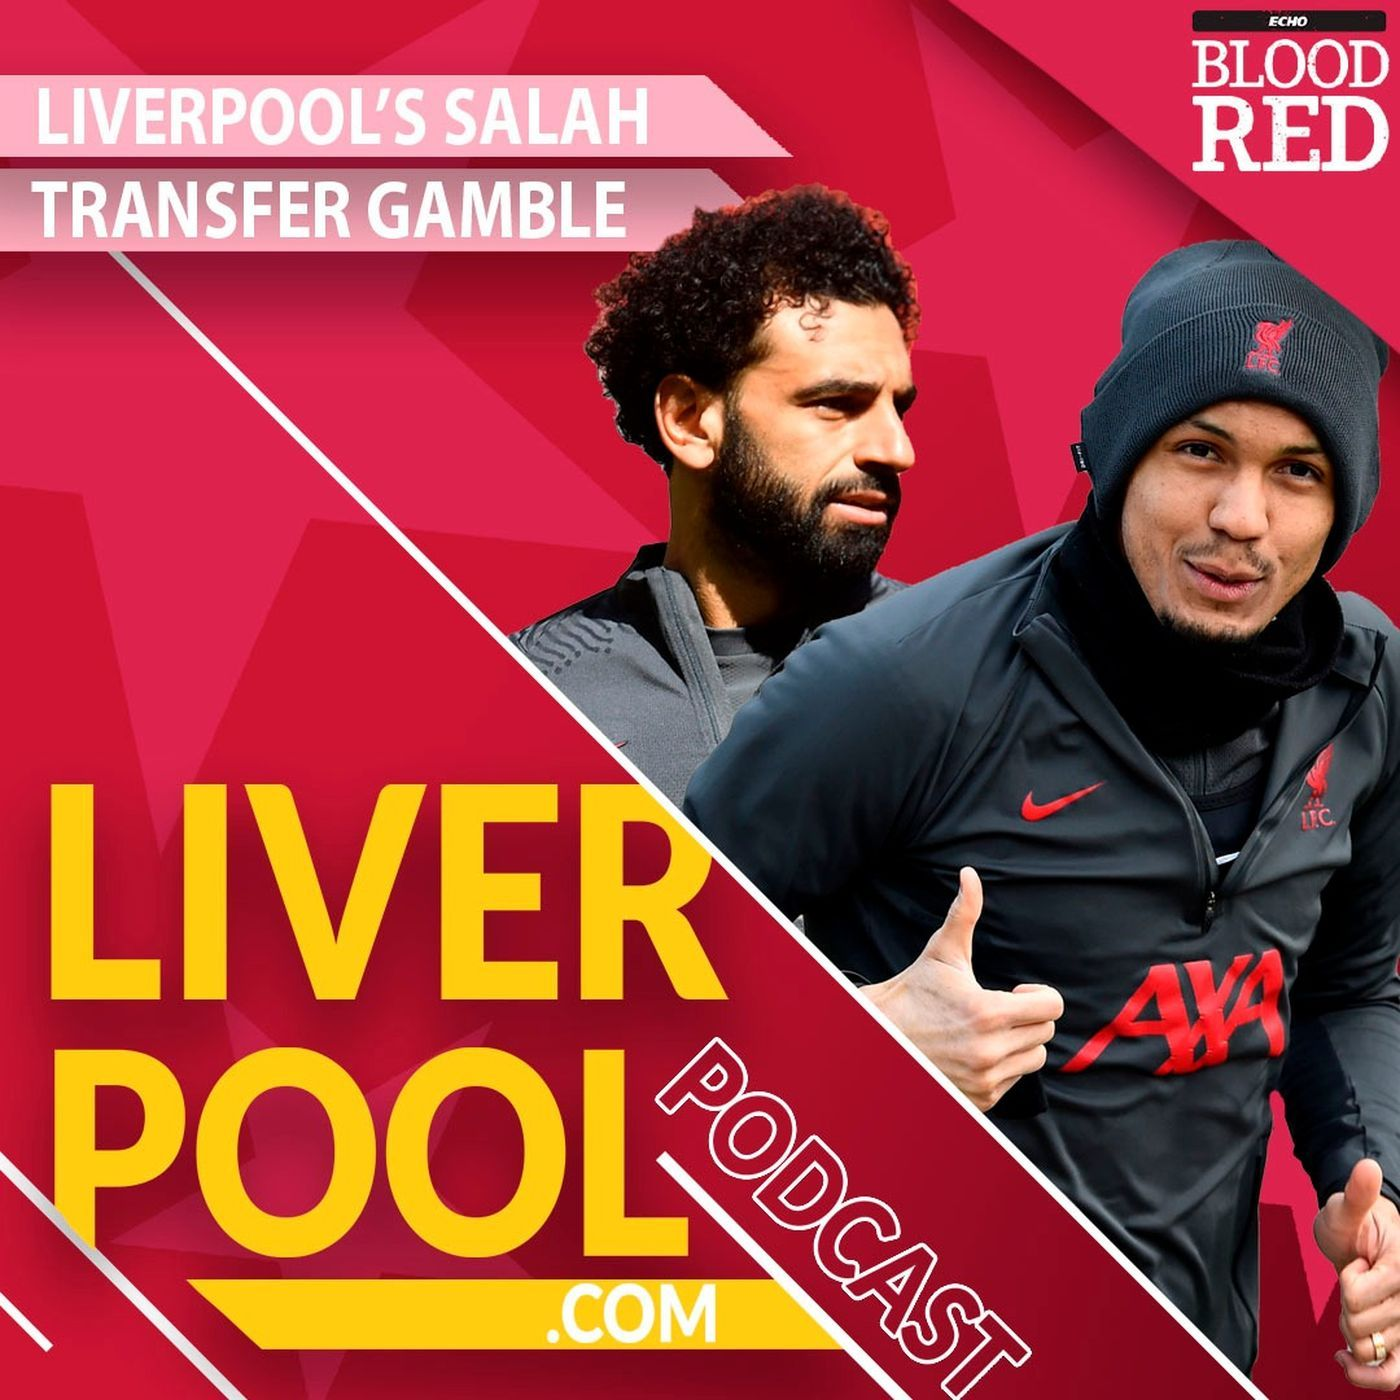 Liverpool.com podcast: Liverpool's Mohamed Salah transfer gamble | Fabinho conundrum returns ahead of Man Utd visit